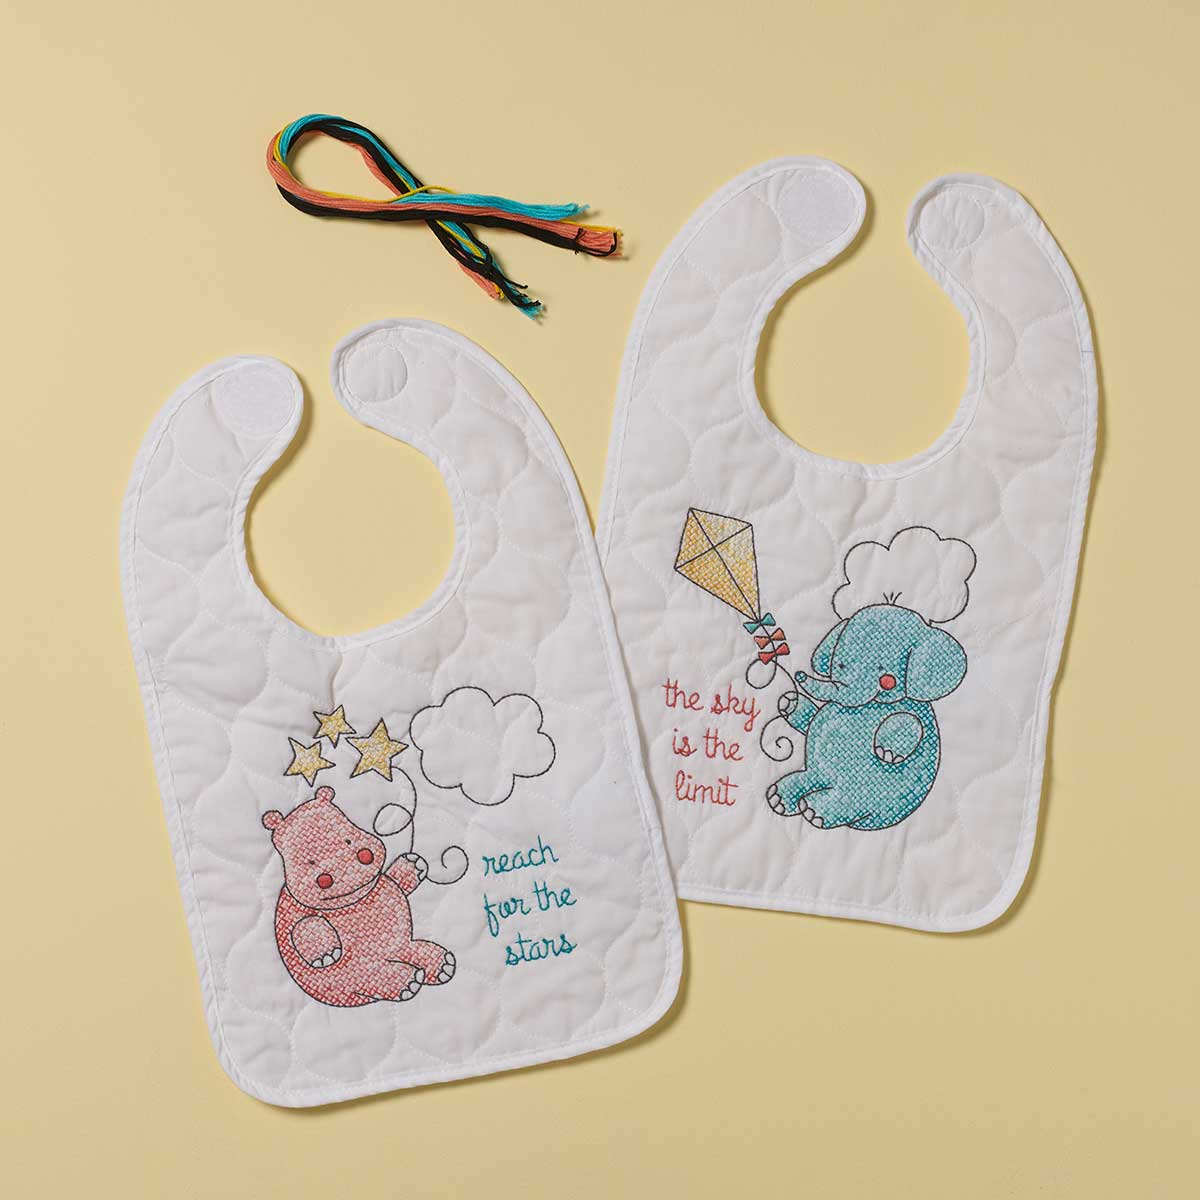 Bucilla ® Baby - Stamped Cross Stitch - Crib Ensembles - Up Up and Away - Bib Pair Kit